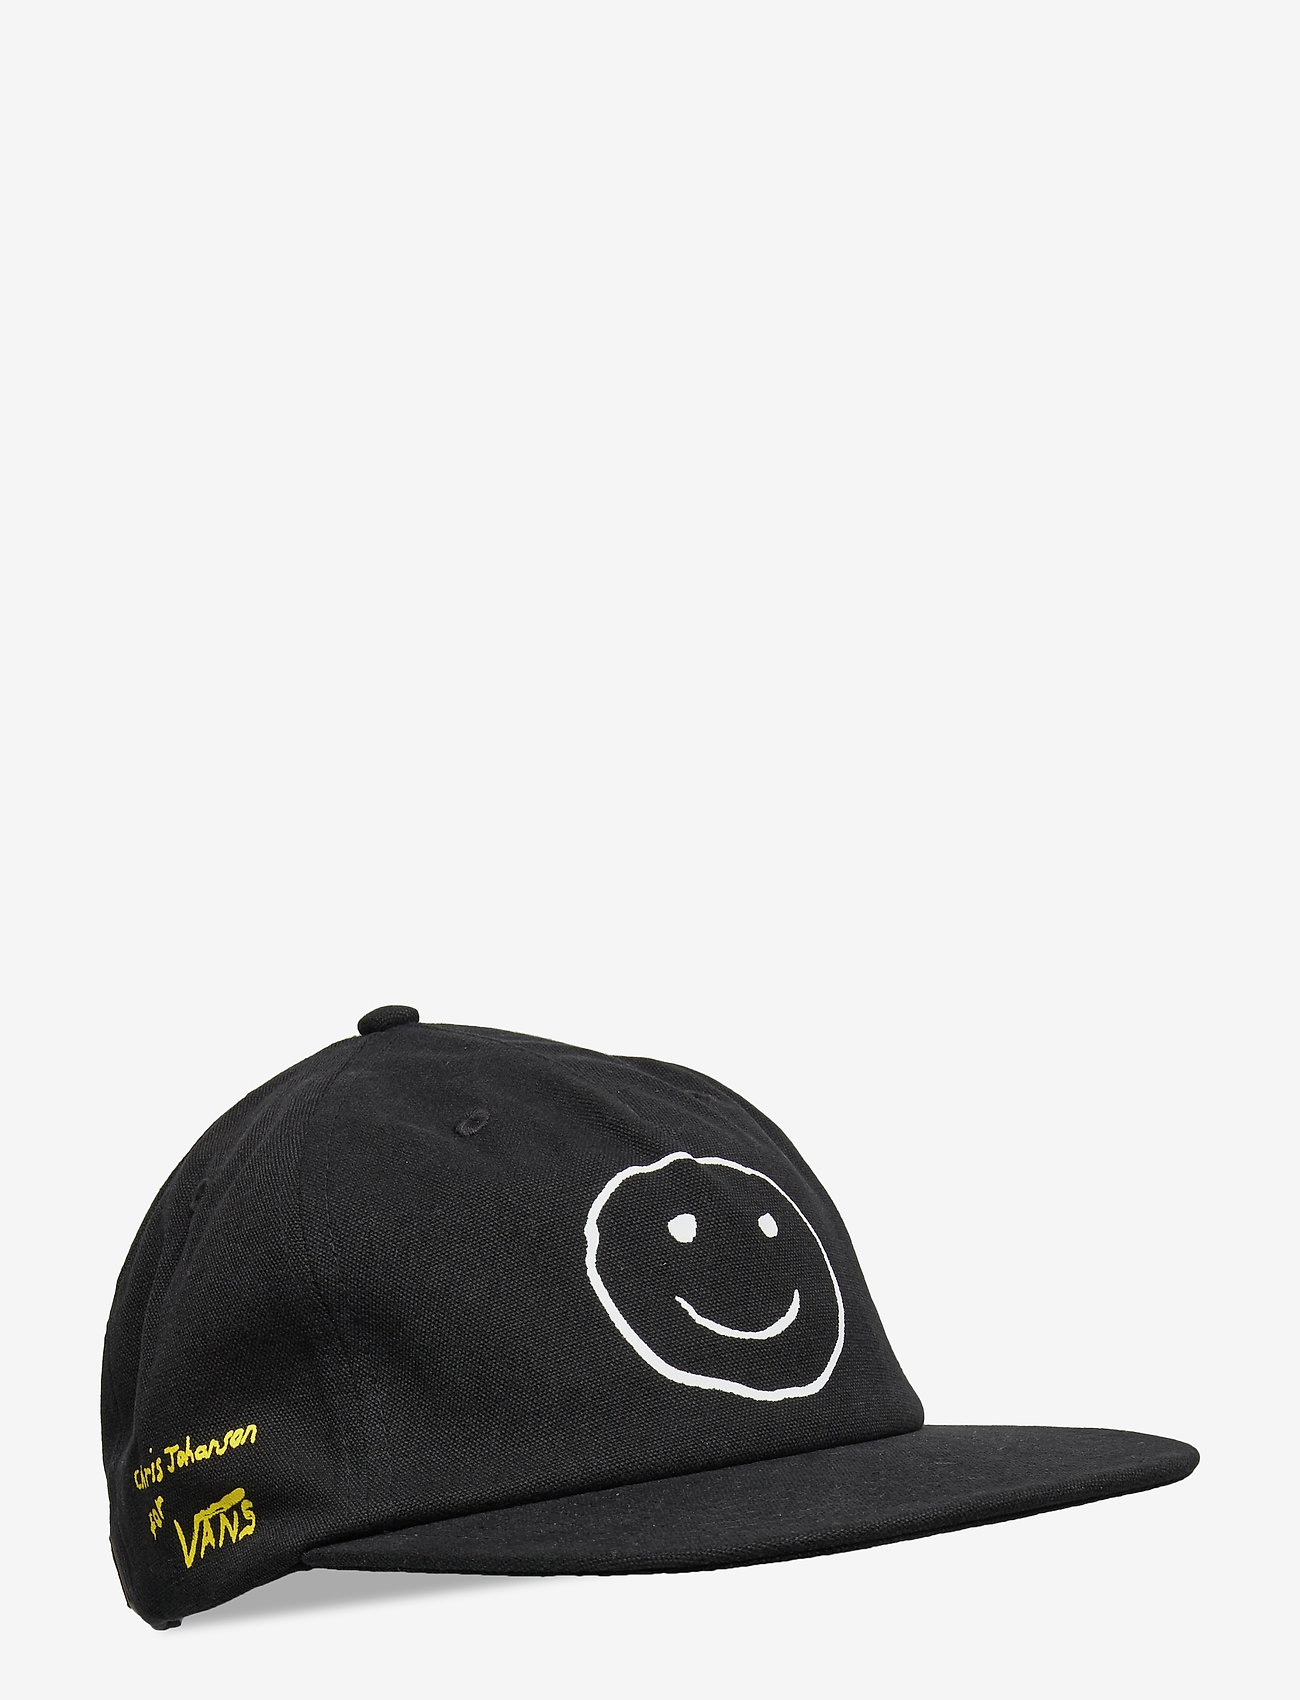 VANS - VANS X CJ SHALLOW UNSTRUCTURED - flat caps - vintage black - 0